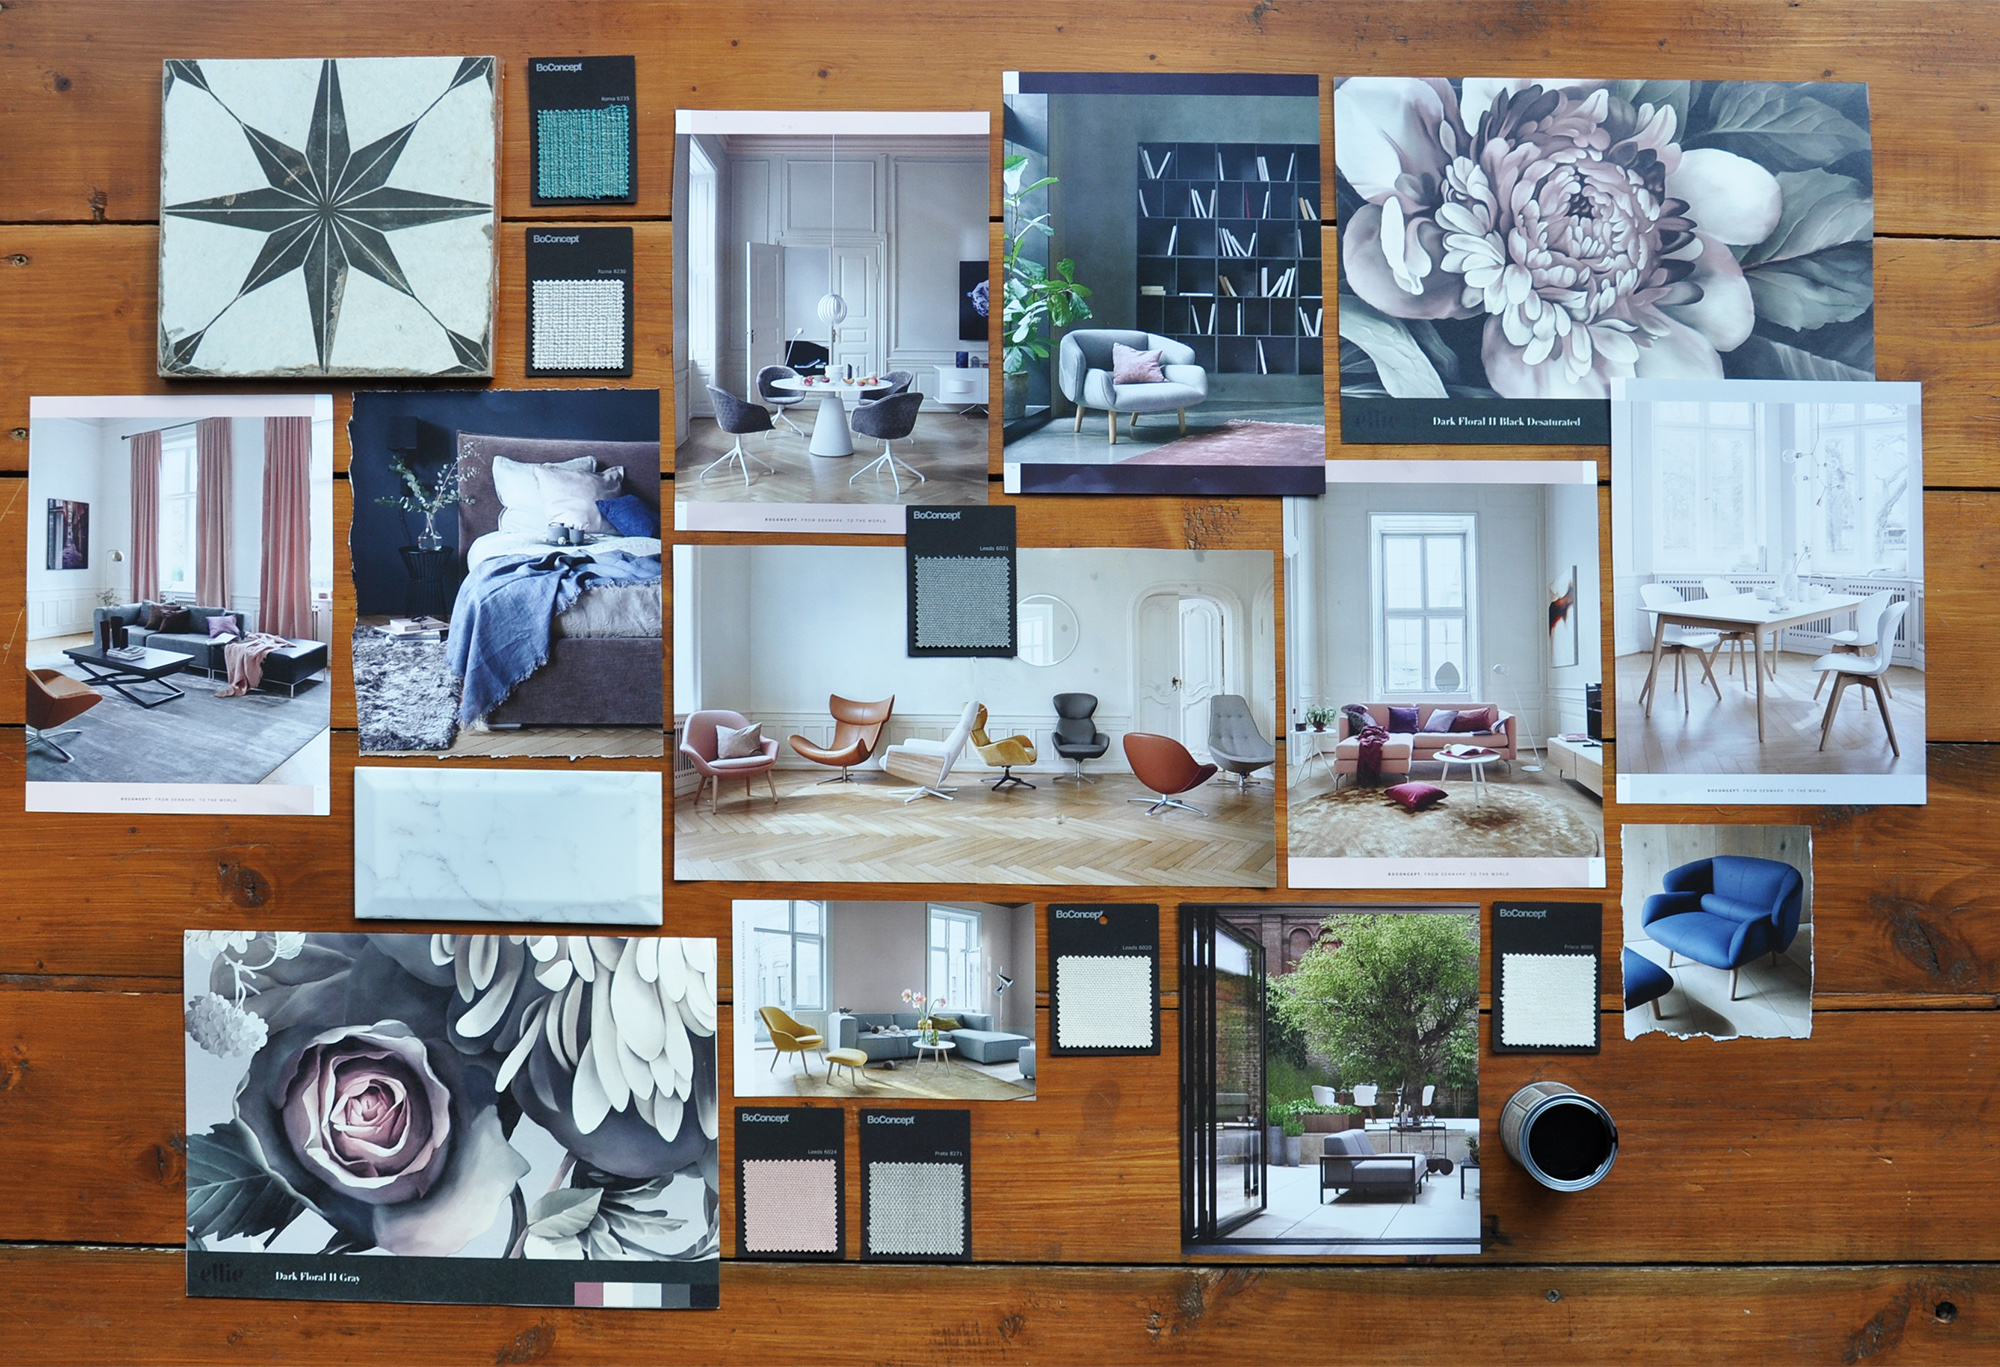 All images taken from the BoConcept catalogue, other than the two large-scale floral wallpaper samples. Star and faux marble tiles are from projects in our house.